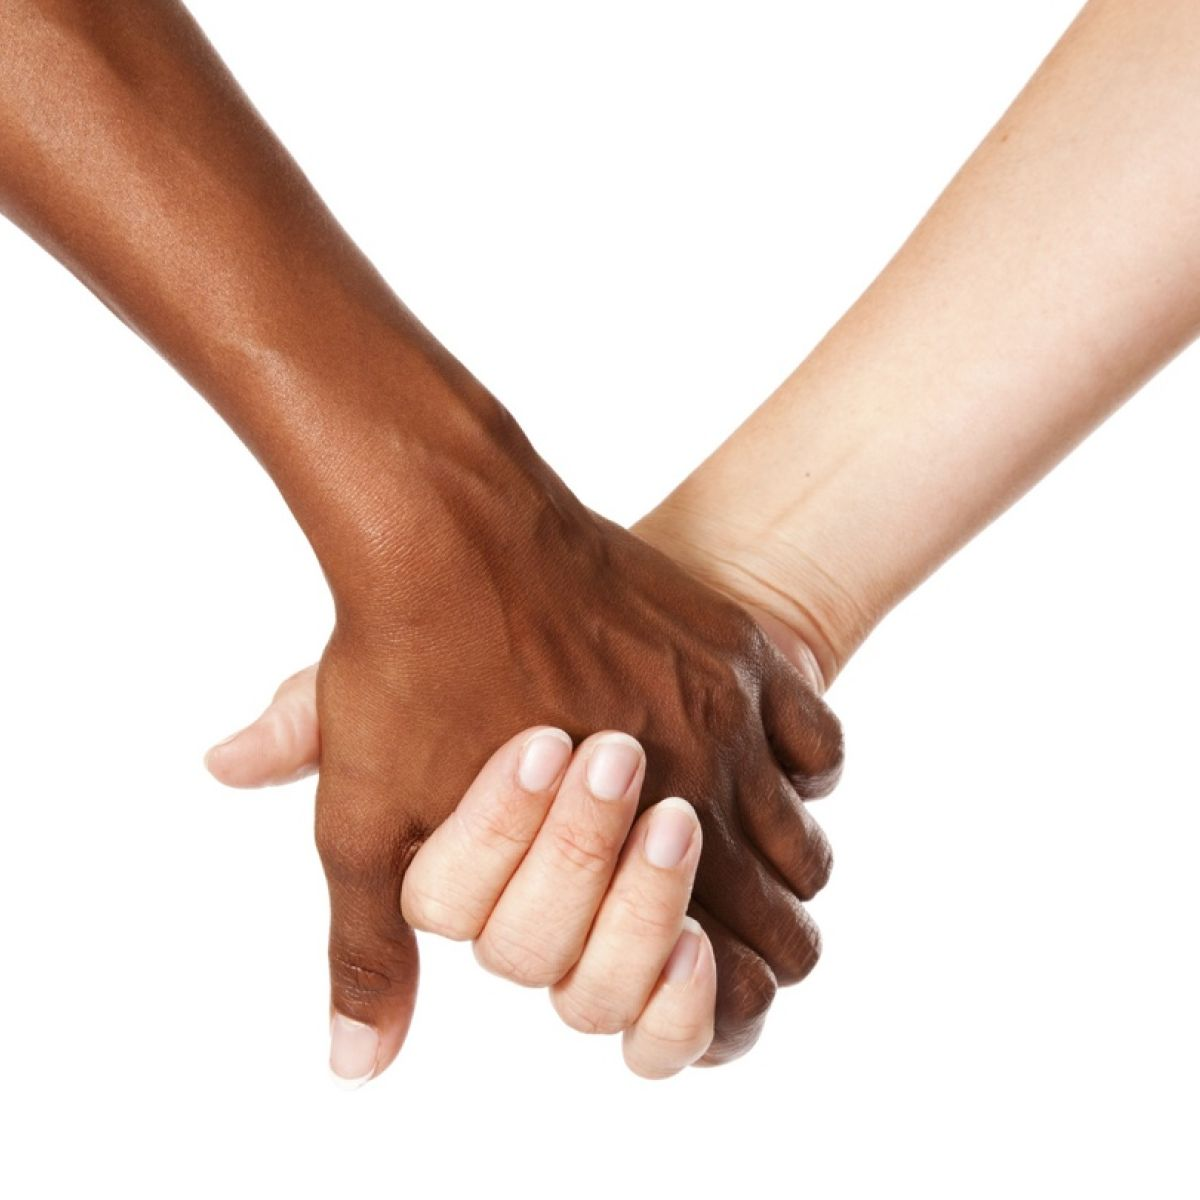 Single Portlaoise Women Seeking Interracial Sex interested in